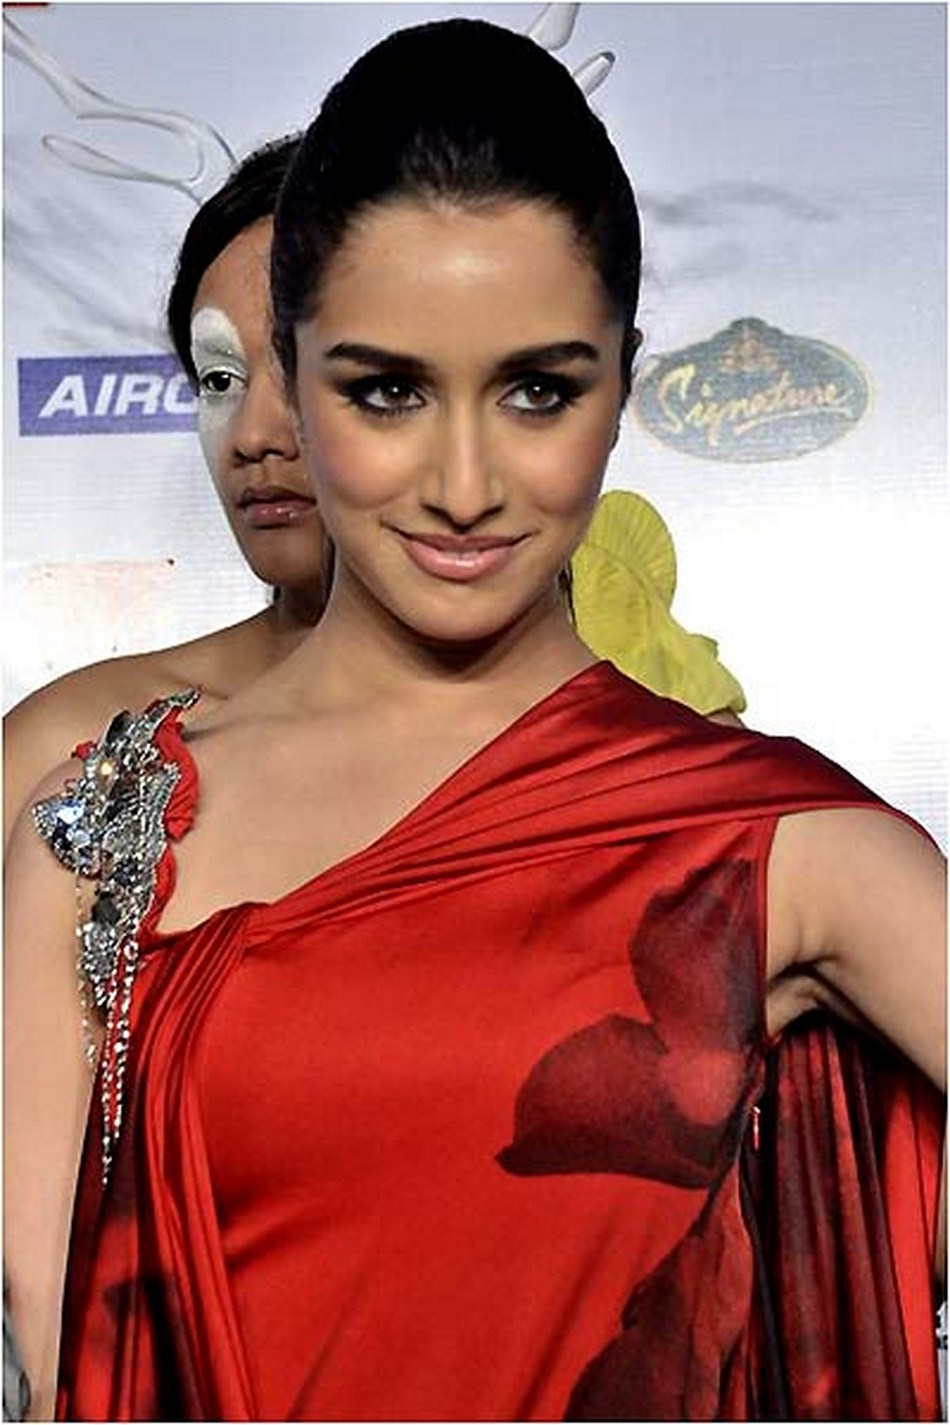 shraddha kapoor hot photos | pics | wallpapers | web pedia